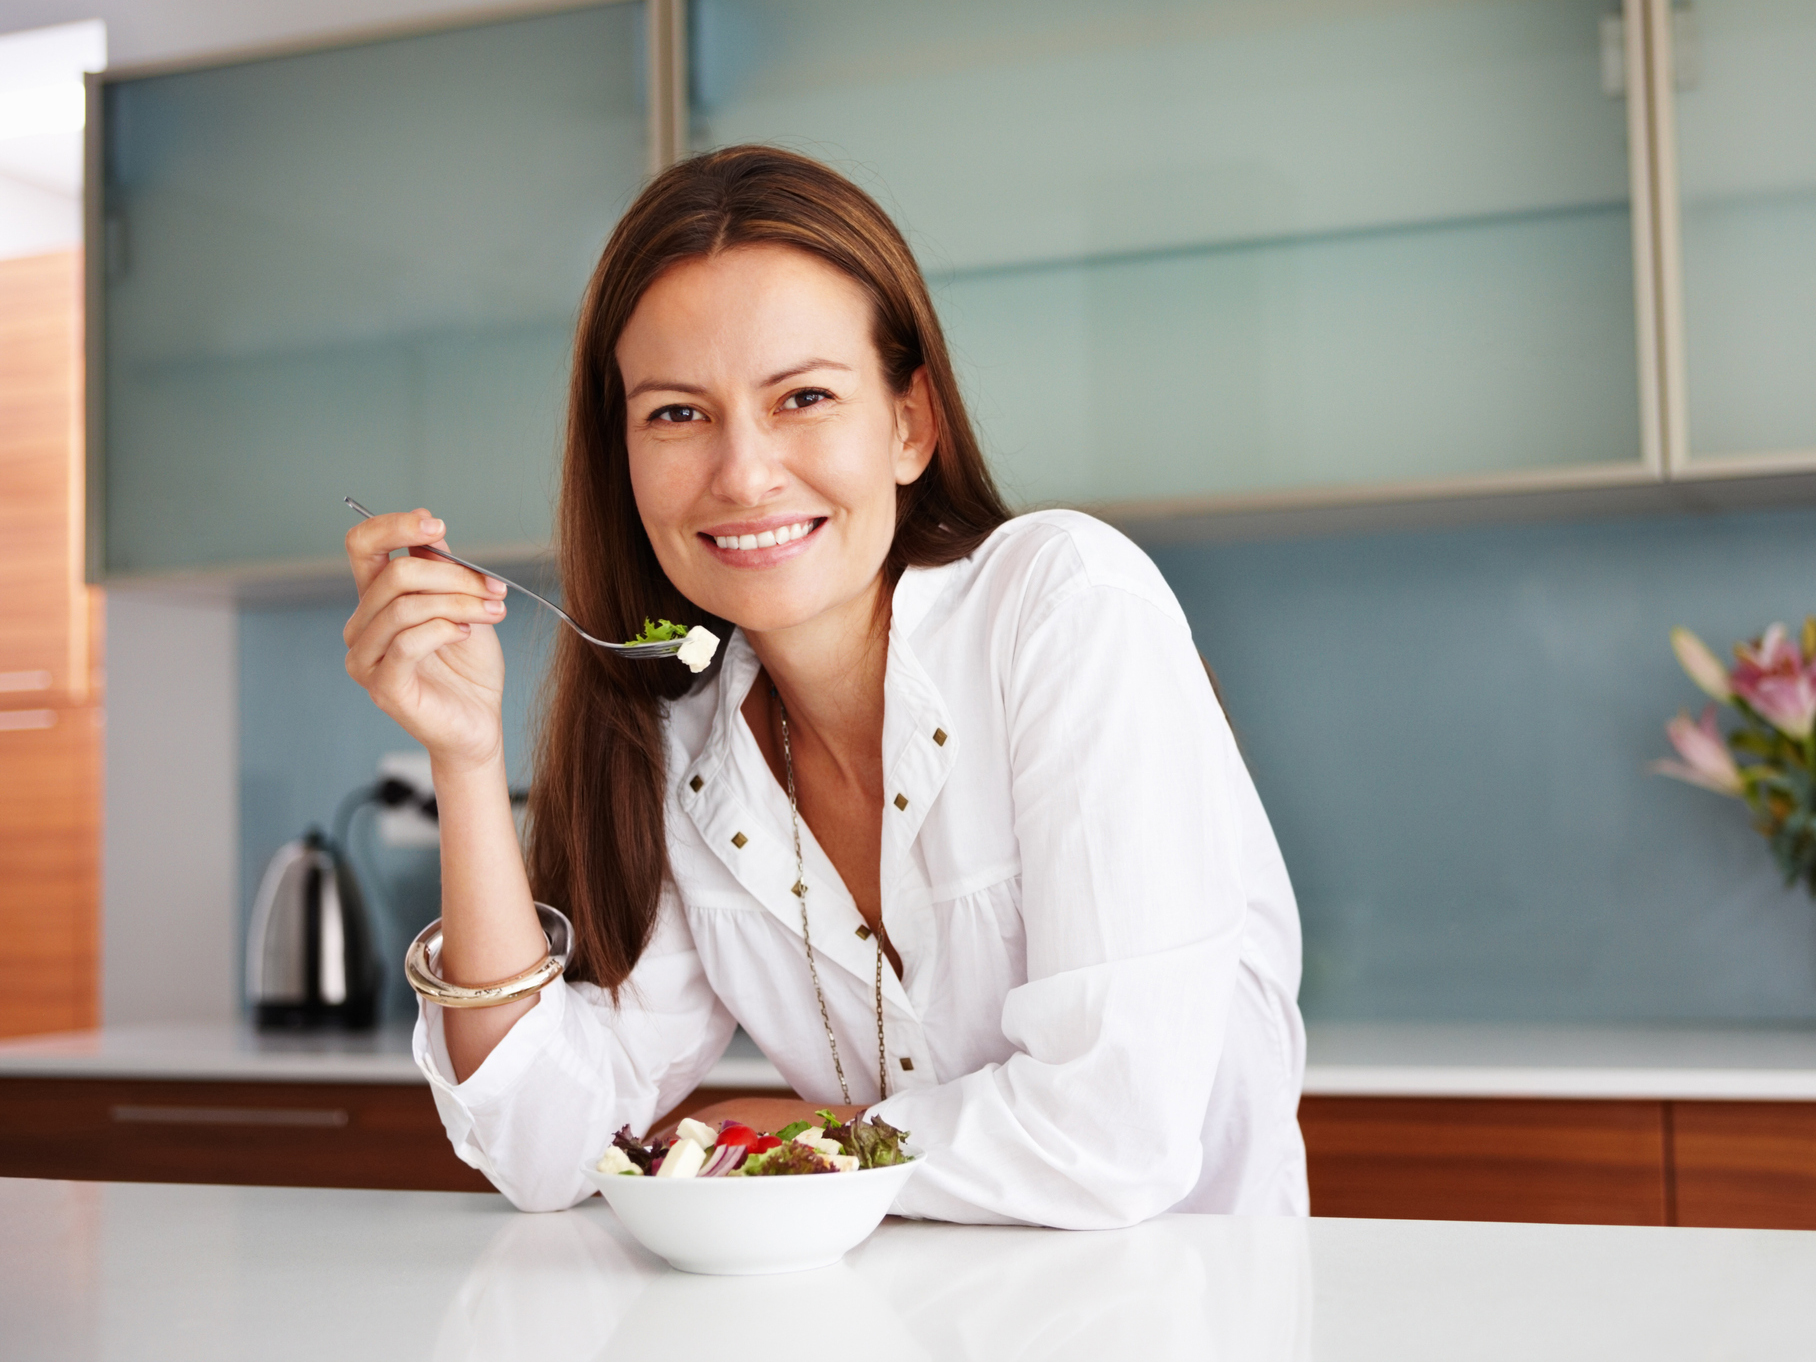 Why eating slow burns calories and fights off metabolic syndrome